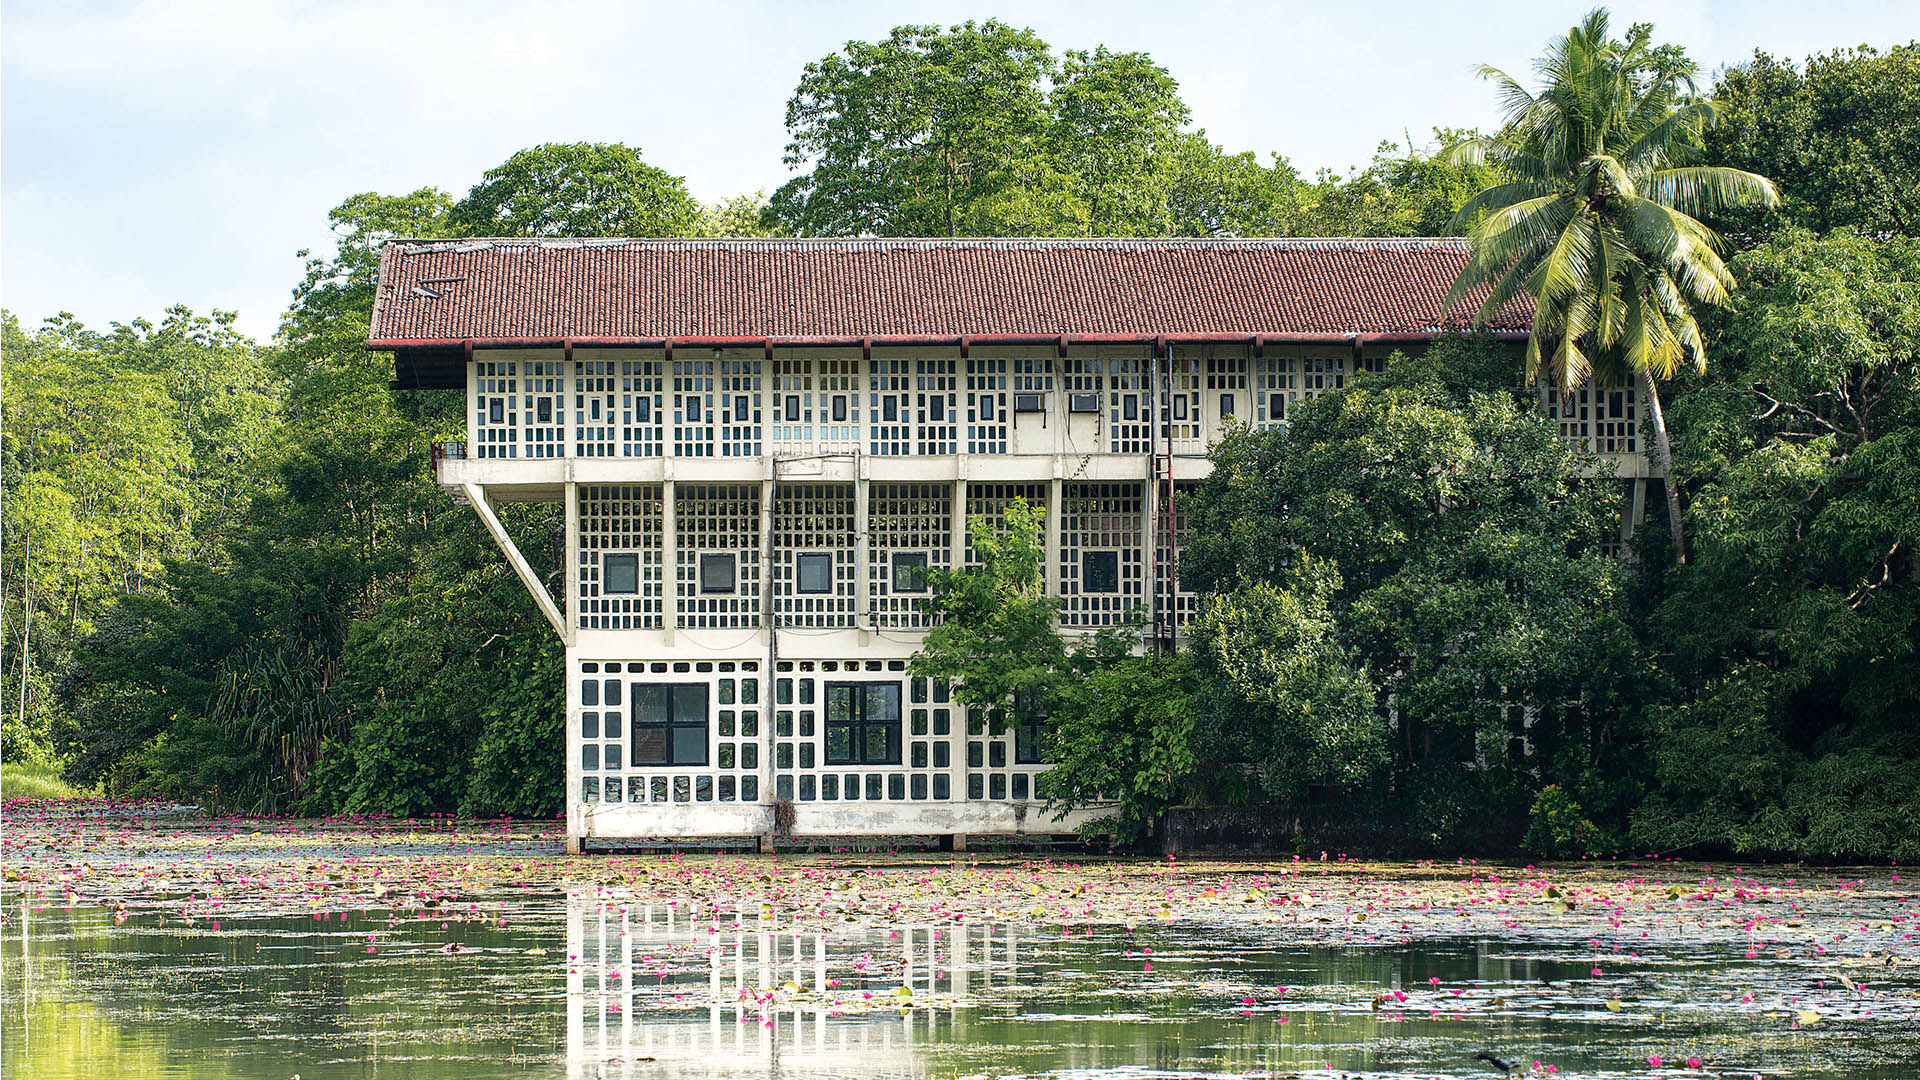 10 Projects by Geoffrey Bawa that made him the pioneer of Tropical Modernism - Steel Corporation Offices and Housing, Sri Lanka